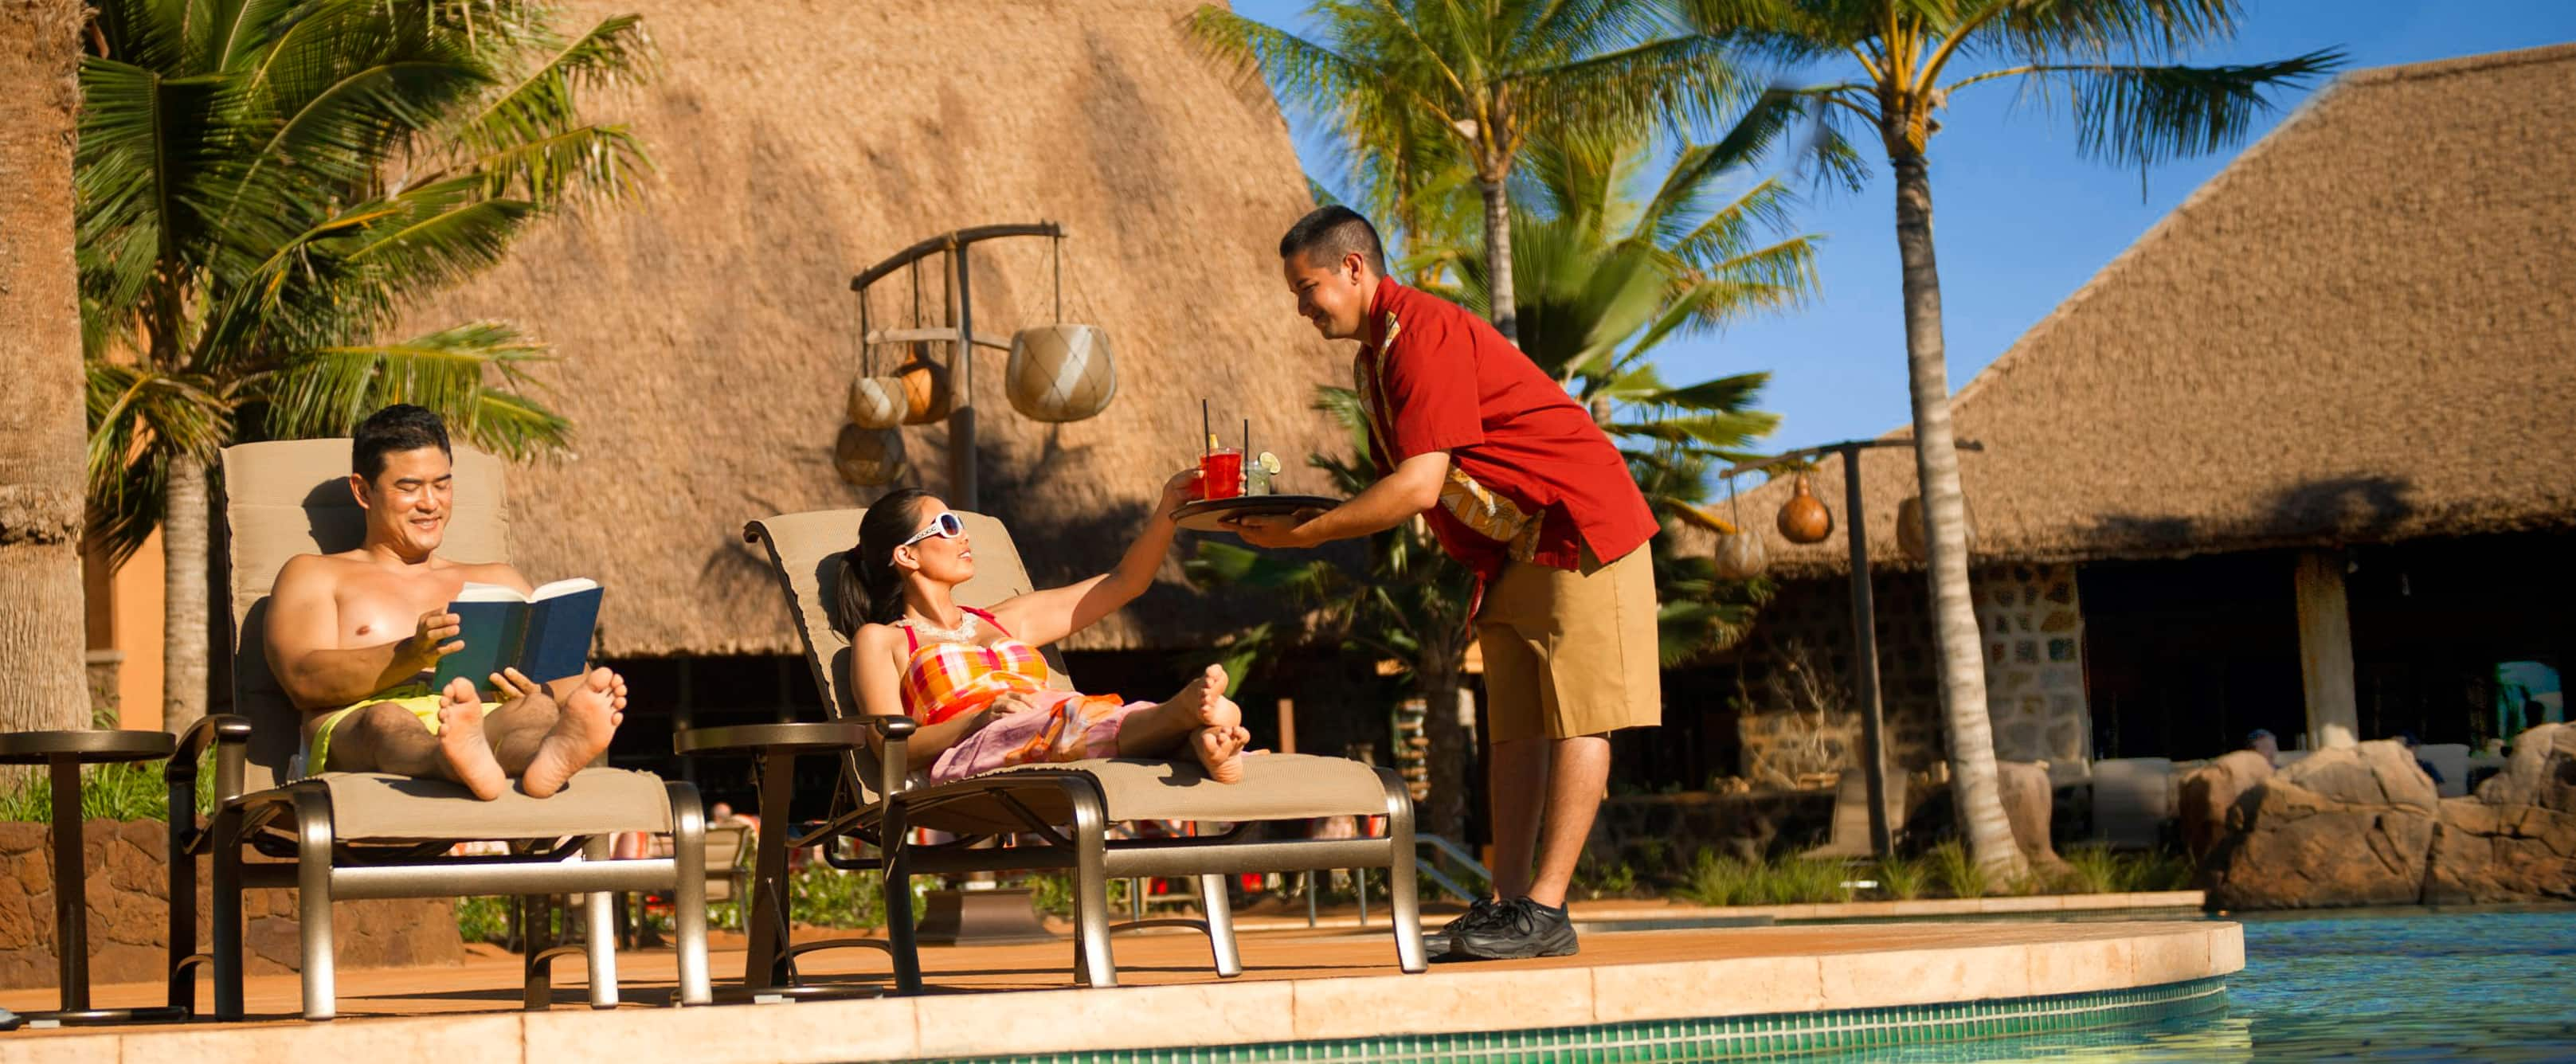 A server brings drinks to a woman on a poolside lounge chair while her husband reads a book